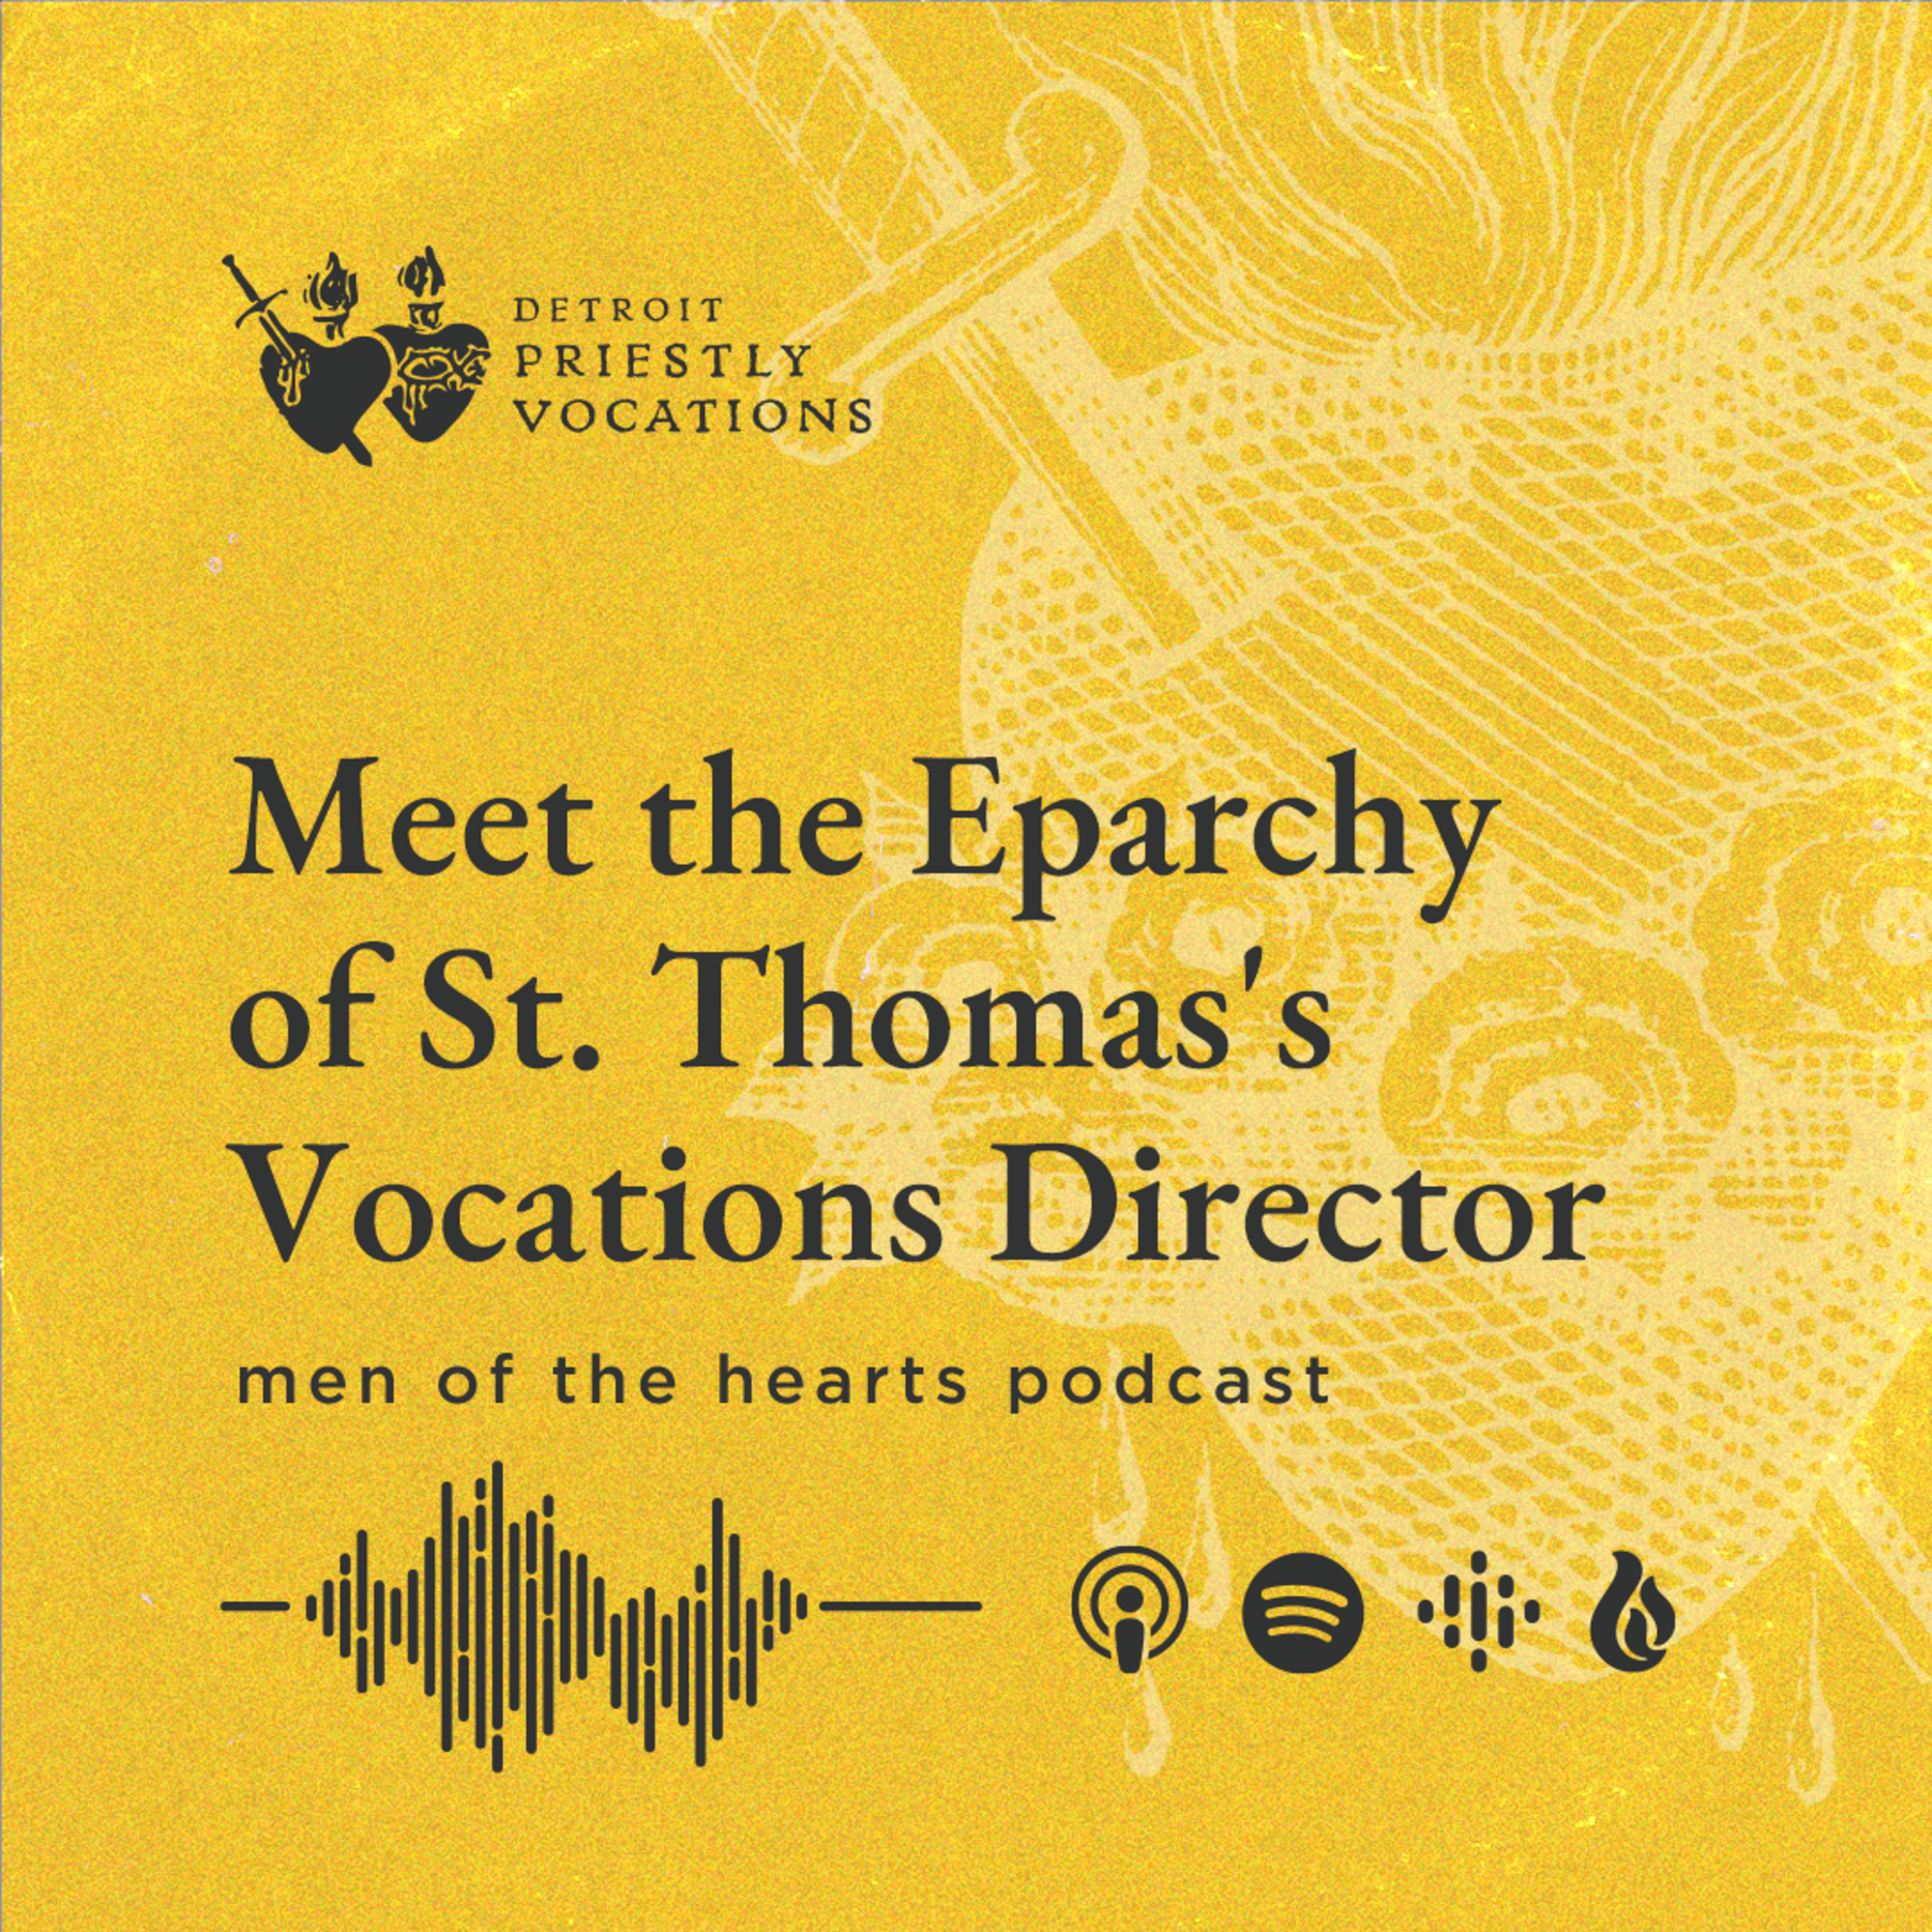 Meet the Eparchy of St. Thomas's Vocations Director